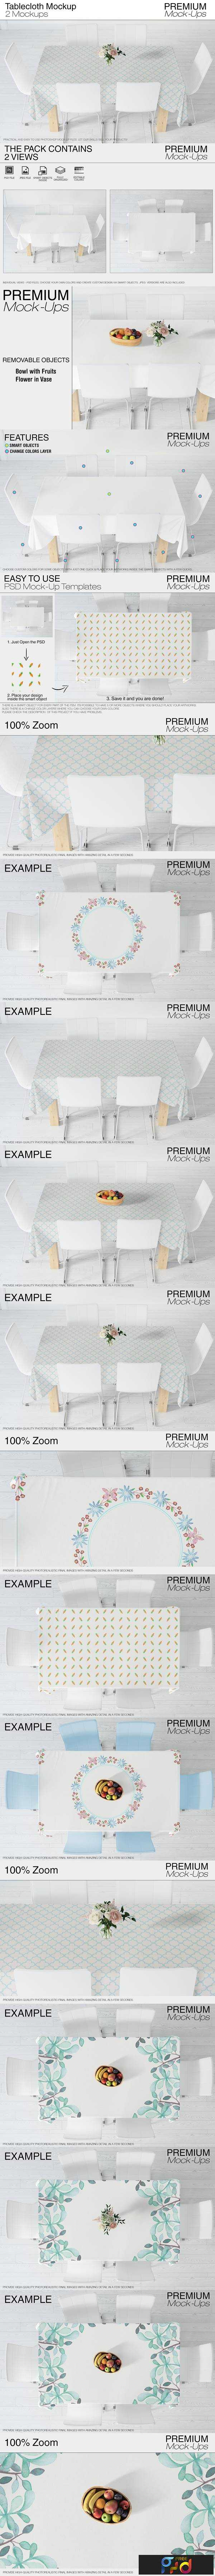 1806186 Tablecloth Mockup Set 2423568 1